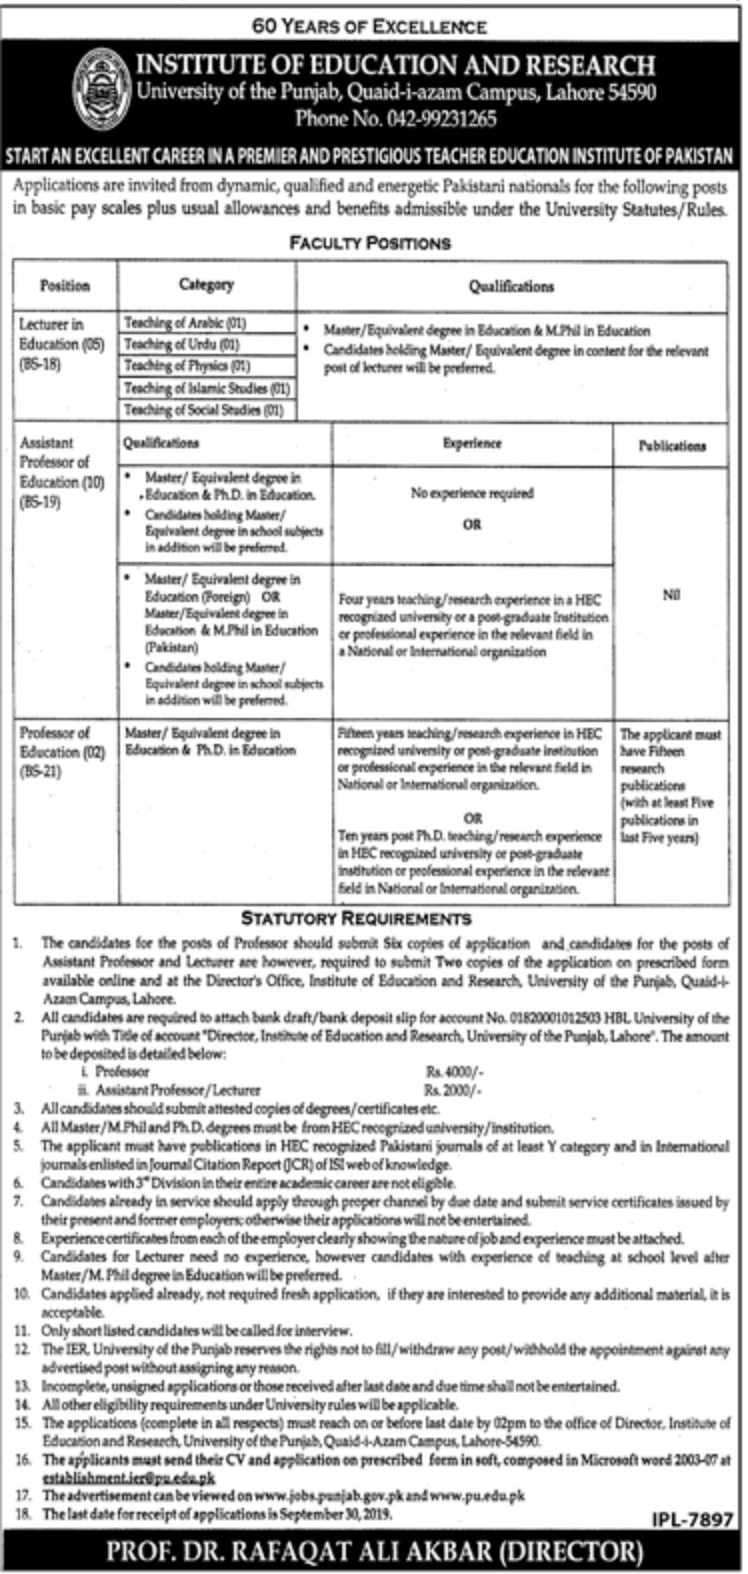 University of the Punjab PU Lahore Jobs 2019 Application Form